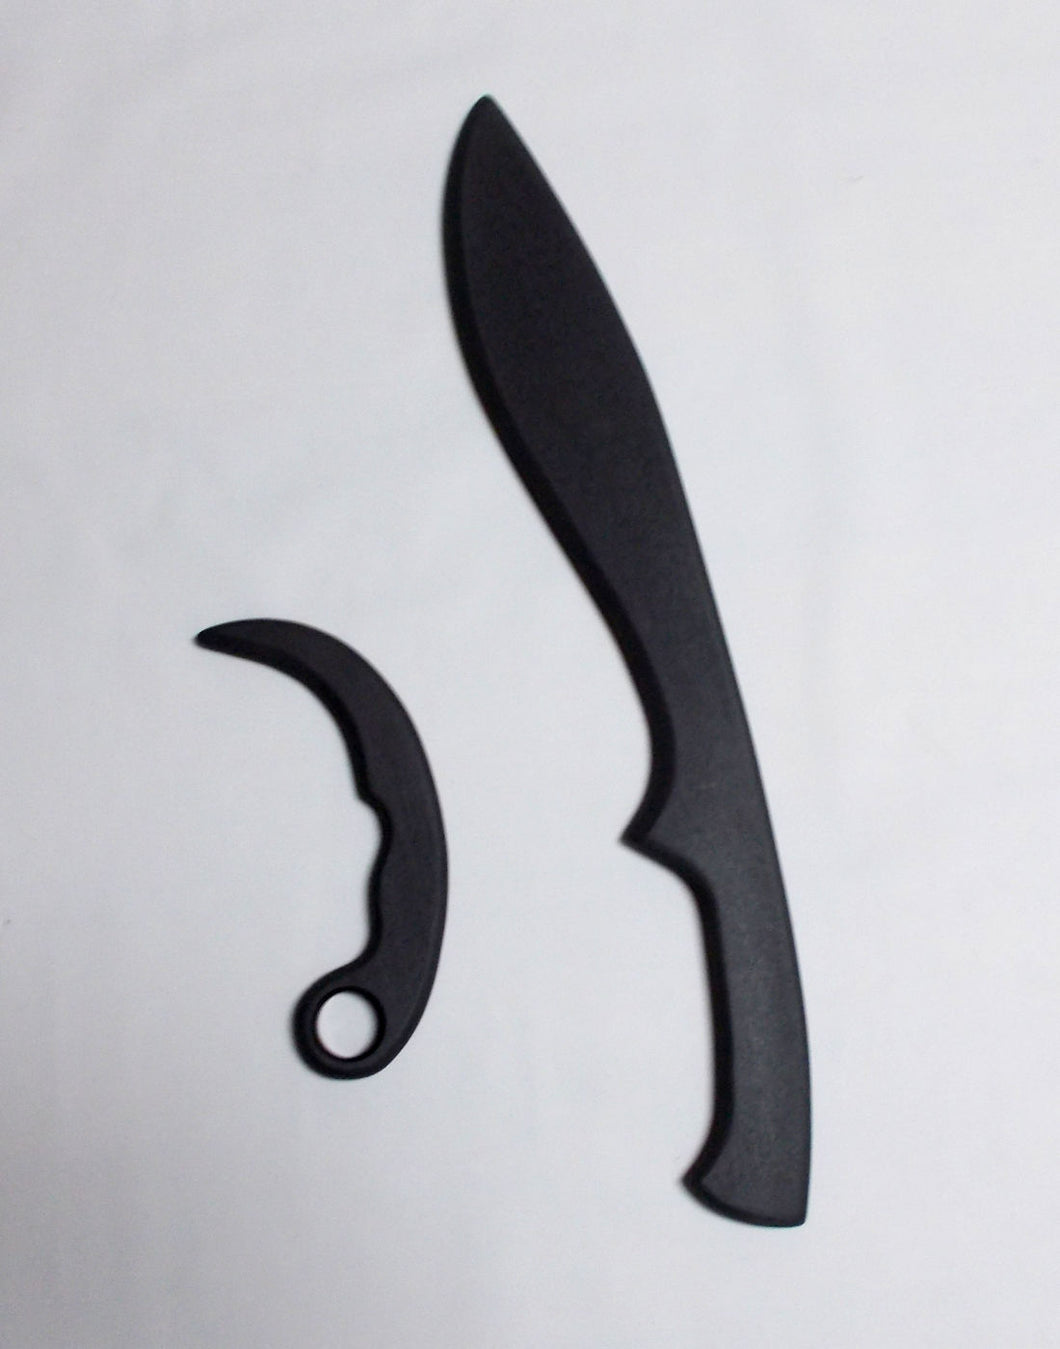 Kukri Training Espada Daga Polypropylene Sword Knife Tactical Practice Karambit Knives